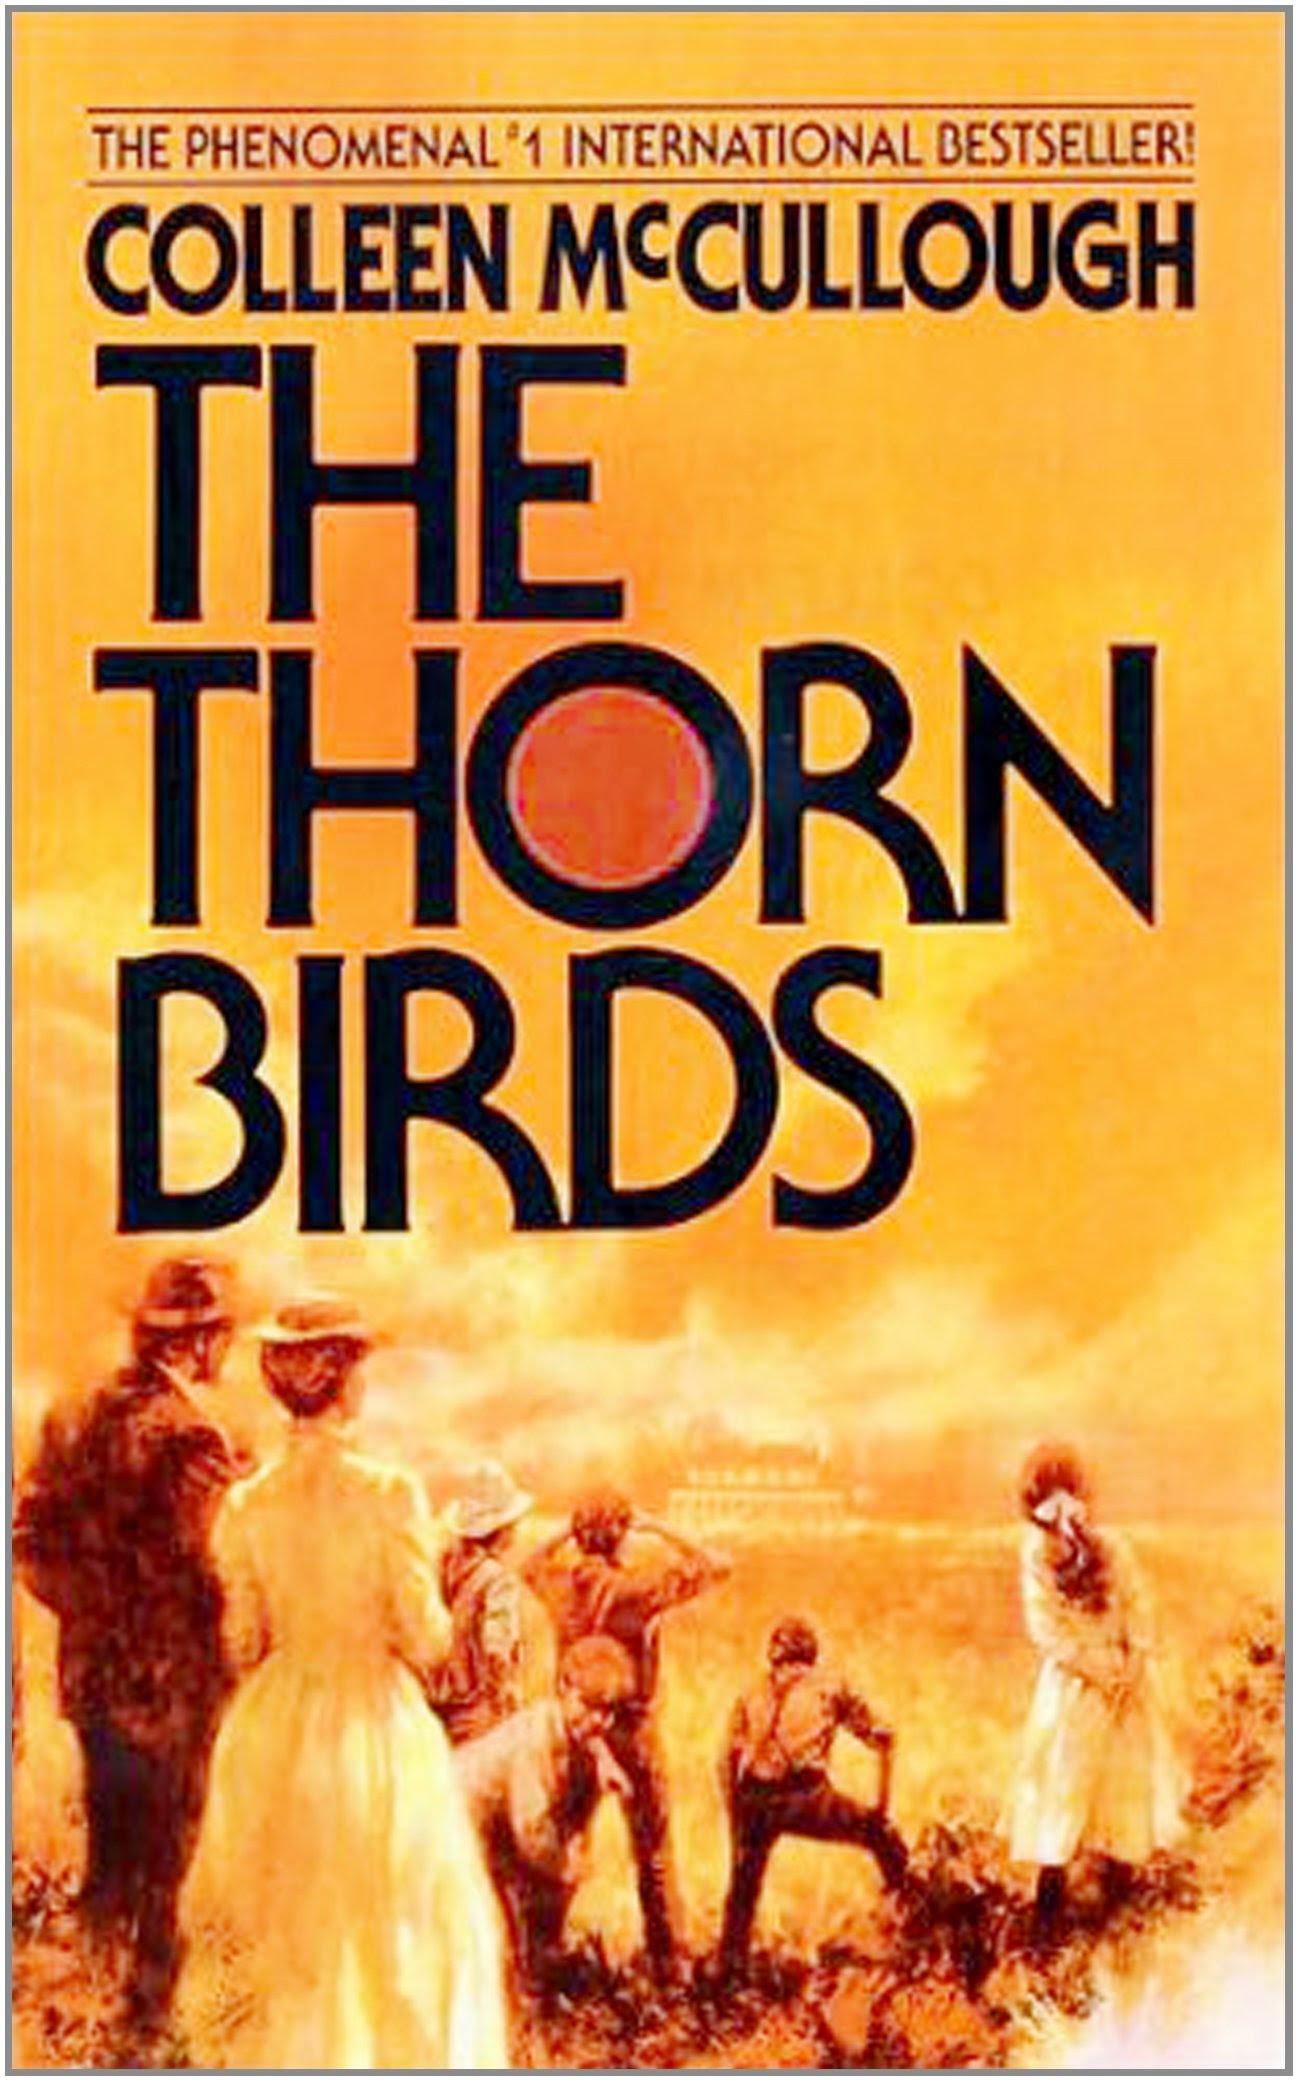 Image result for thorn birds book